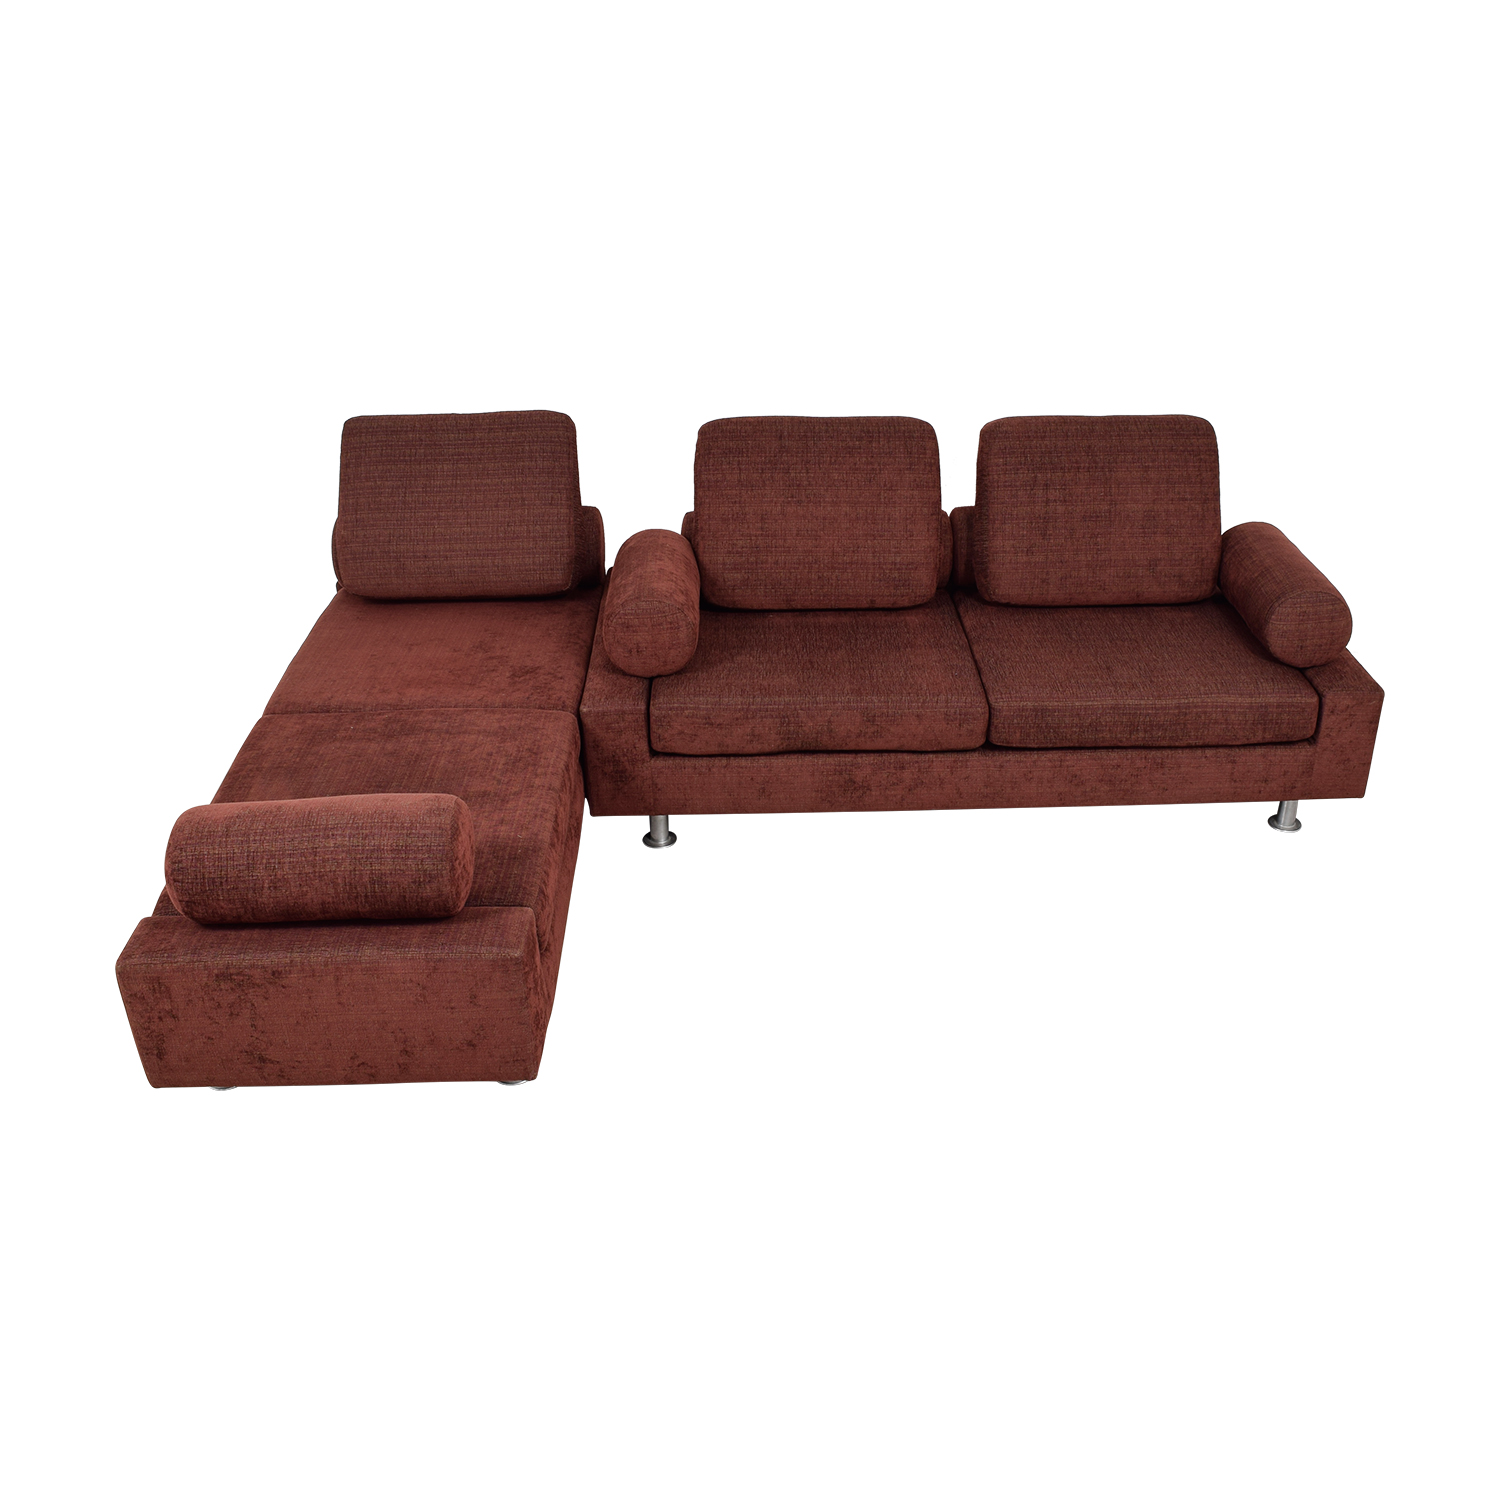 buy Normand Couture for Shermag Cameleon Convertible Sofa Normand Couture for Shermag Sofas